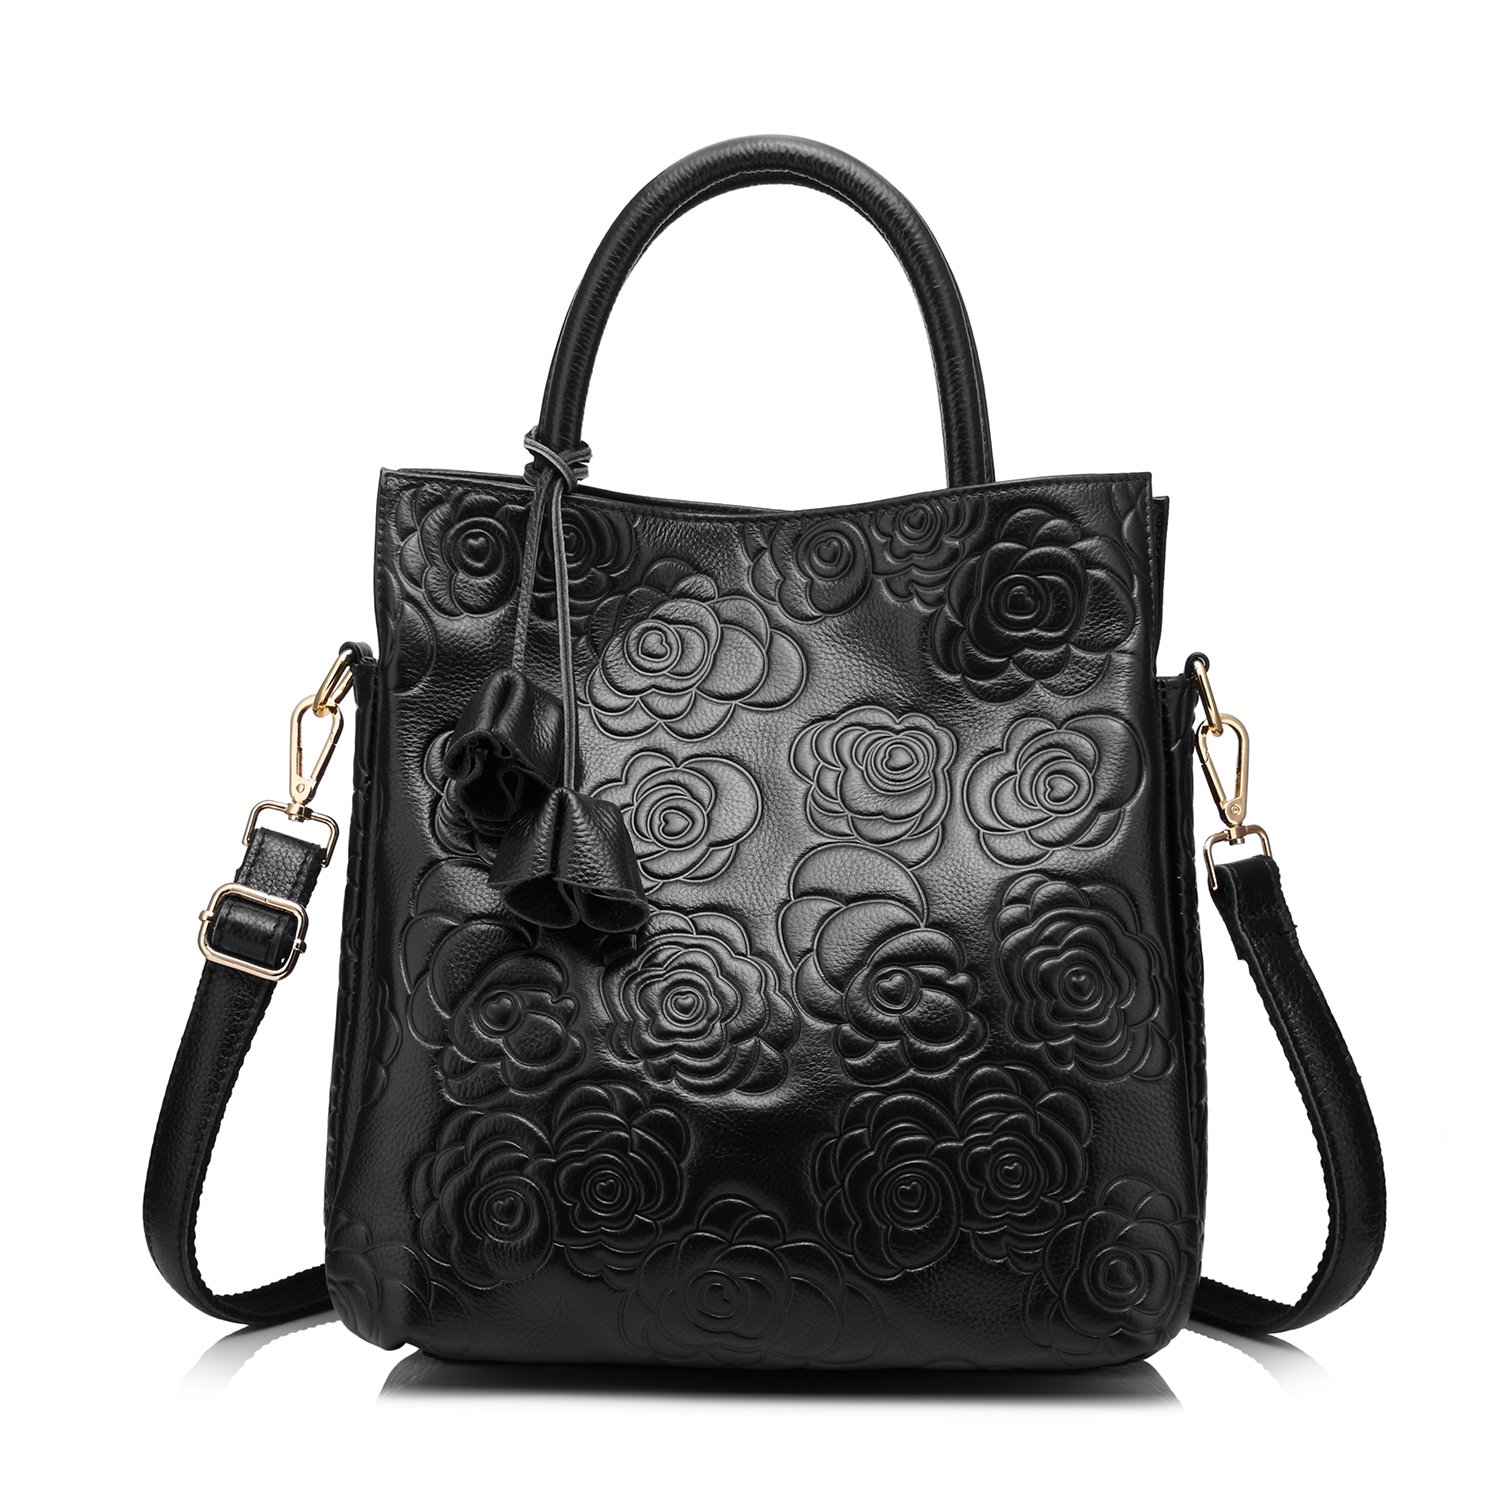 Amazon.com  Designer Genuine Leather Handbag Women Tote Bag Floral Embossed  Shoulder Bag by Realer(Black)  Shoes de01dee9a481a